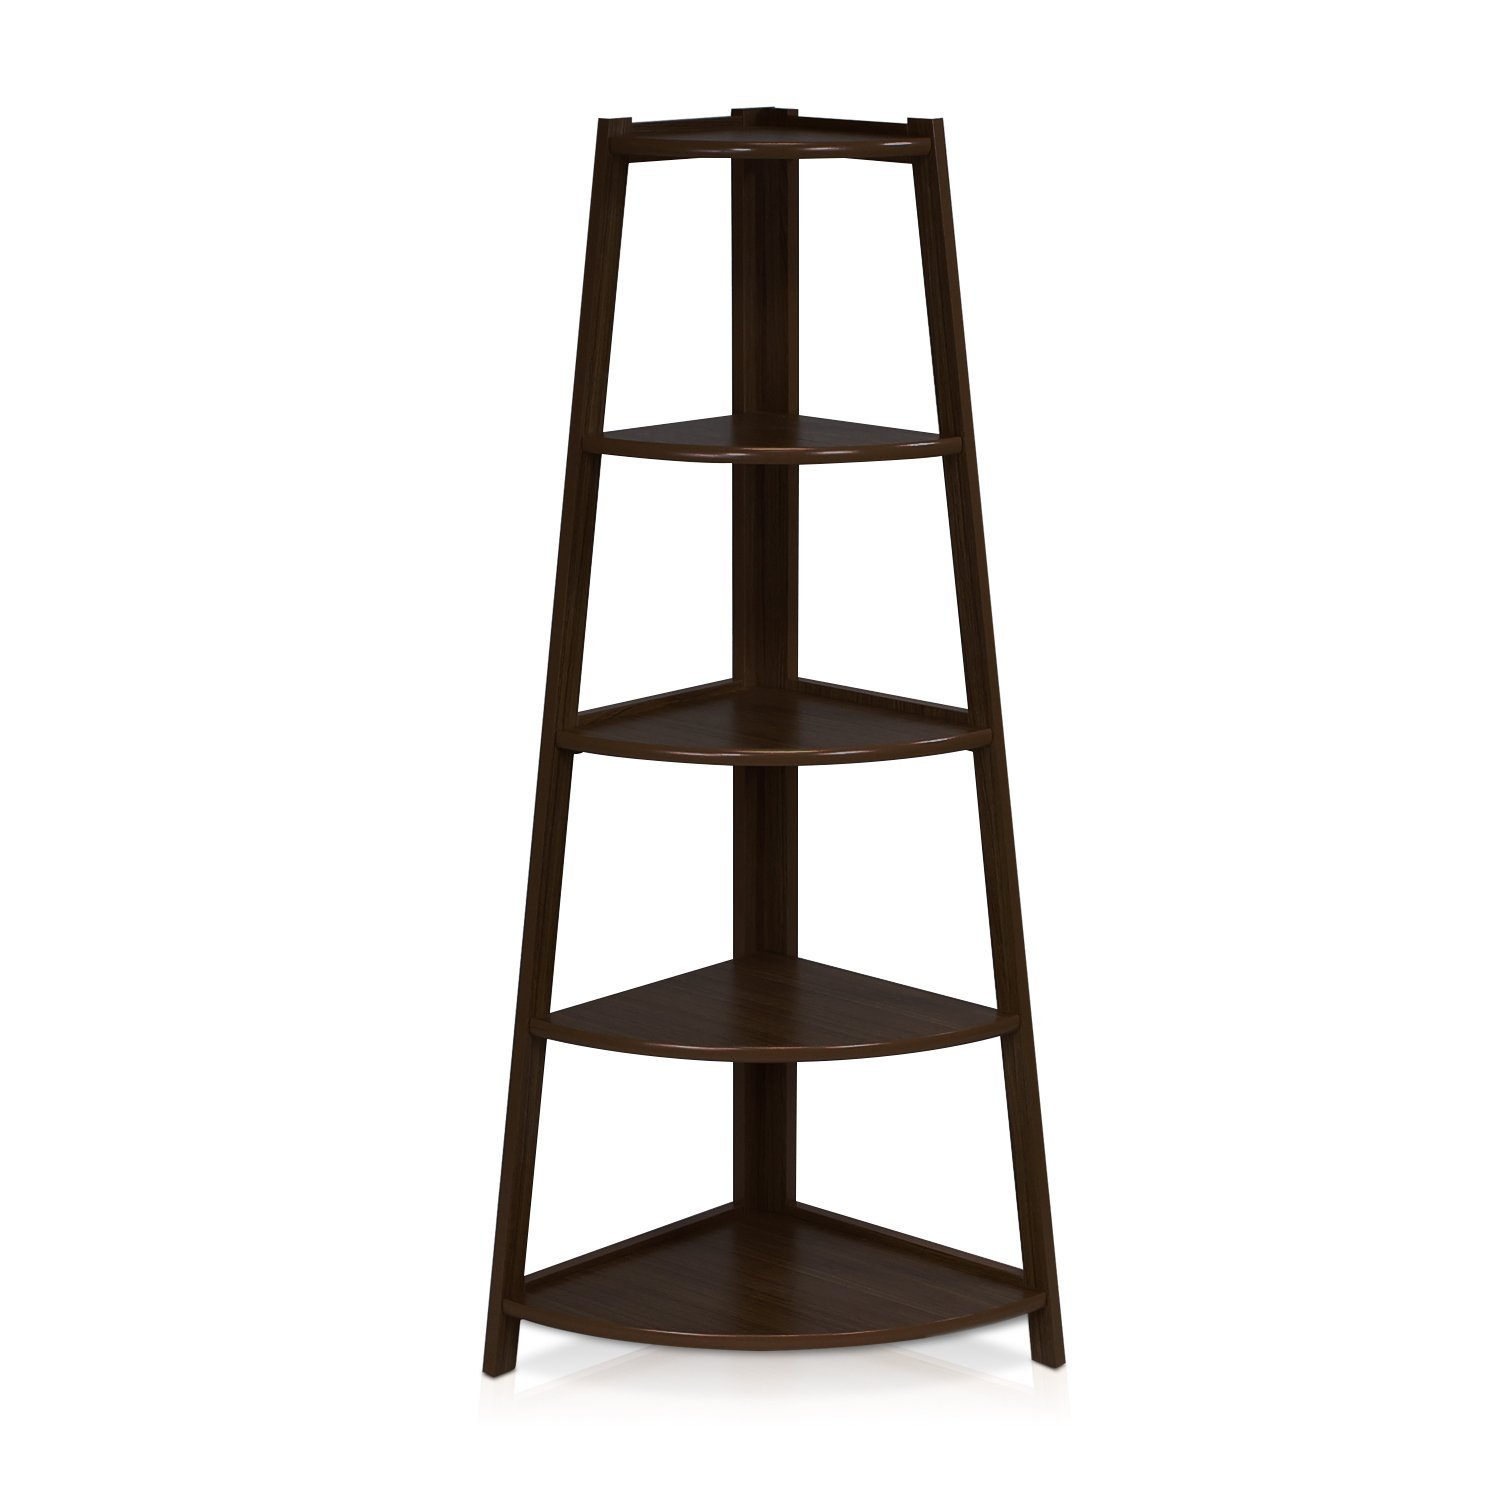 Furinno-5 Tier Corner Ladder Shelf with Espresso Black Color  Review